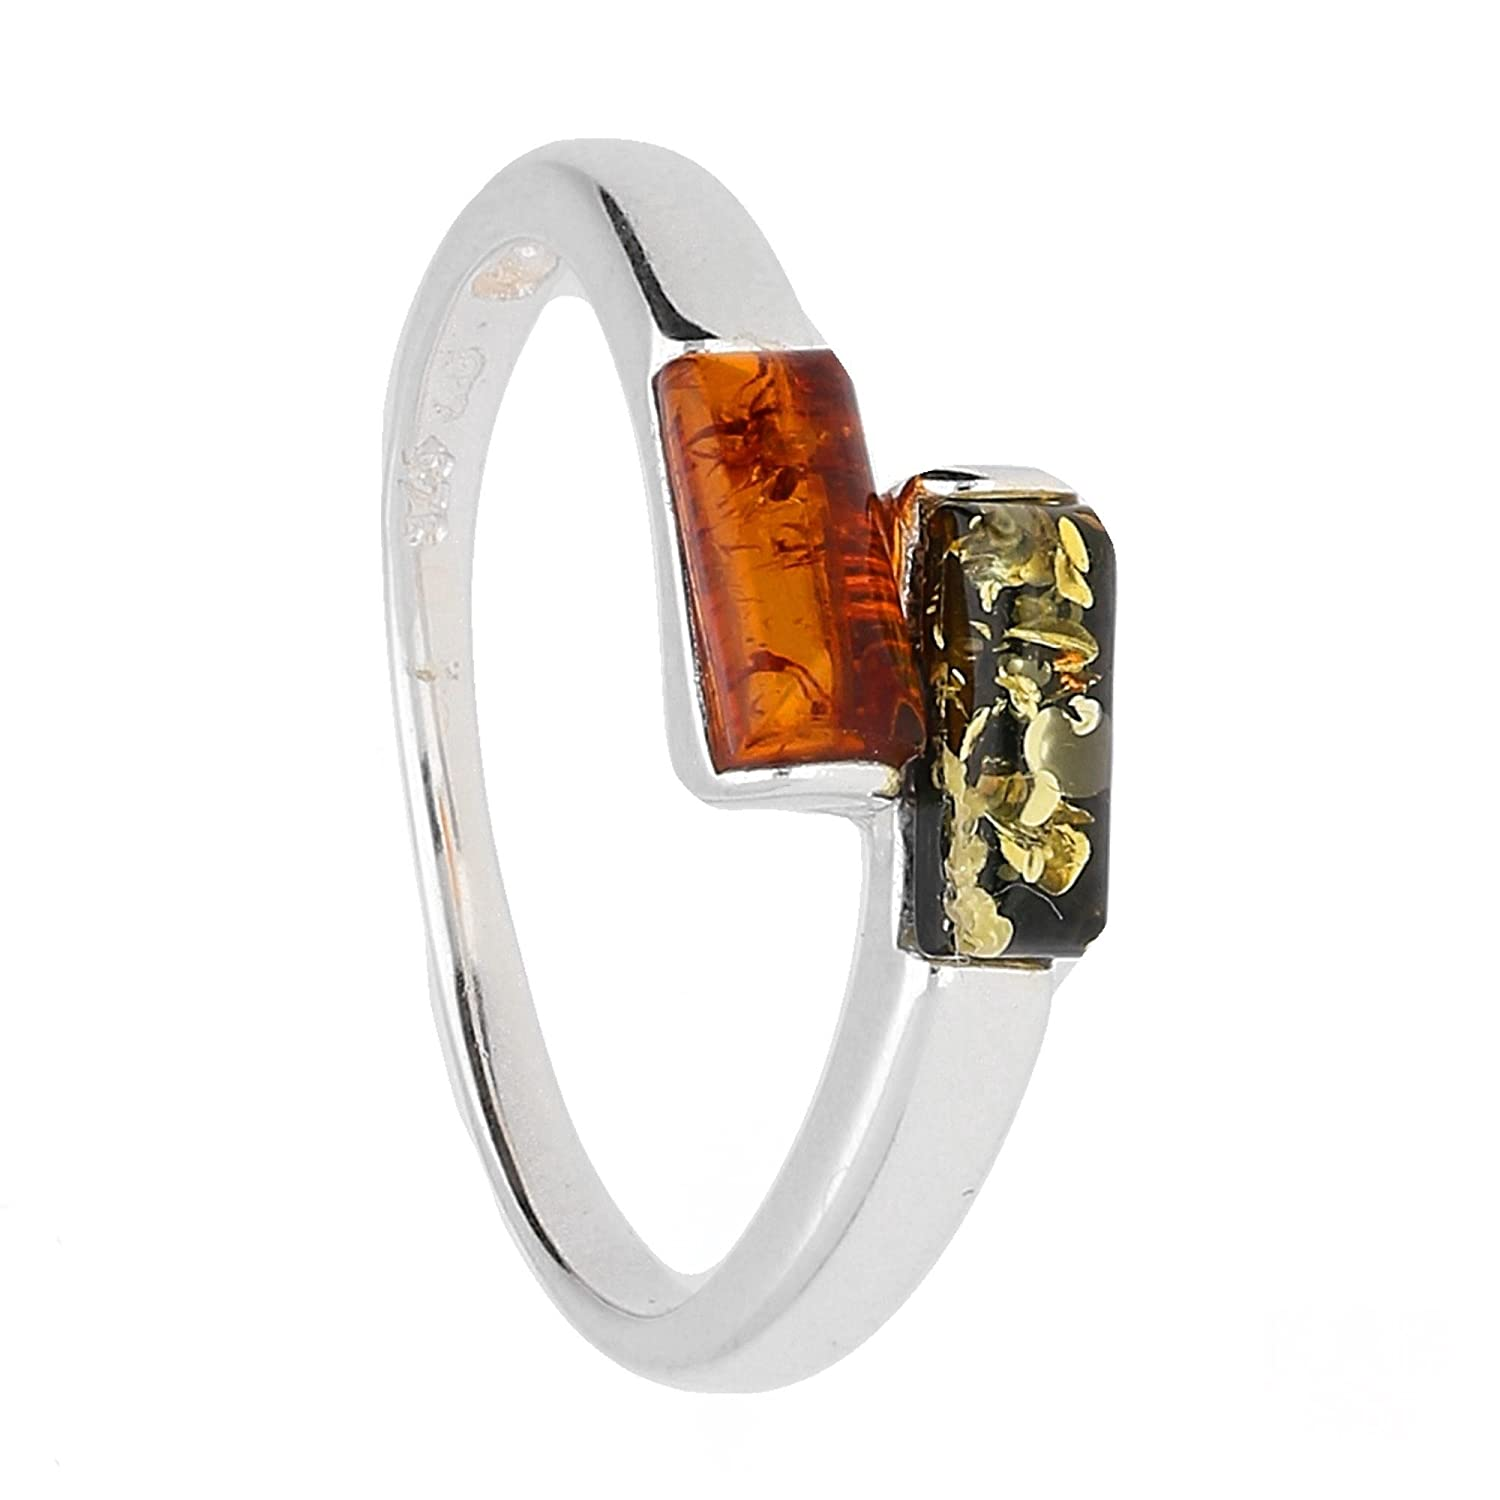 12*6 mm Cognac Baltic Amber /& 925 Sterling Silver Ring